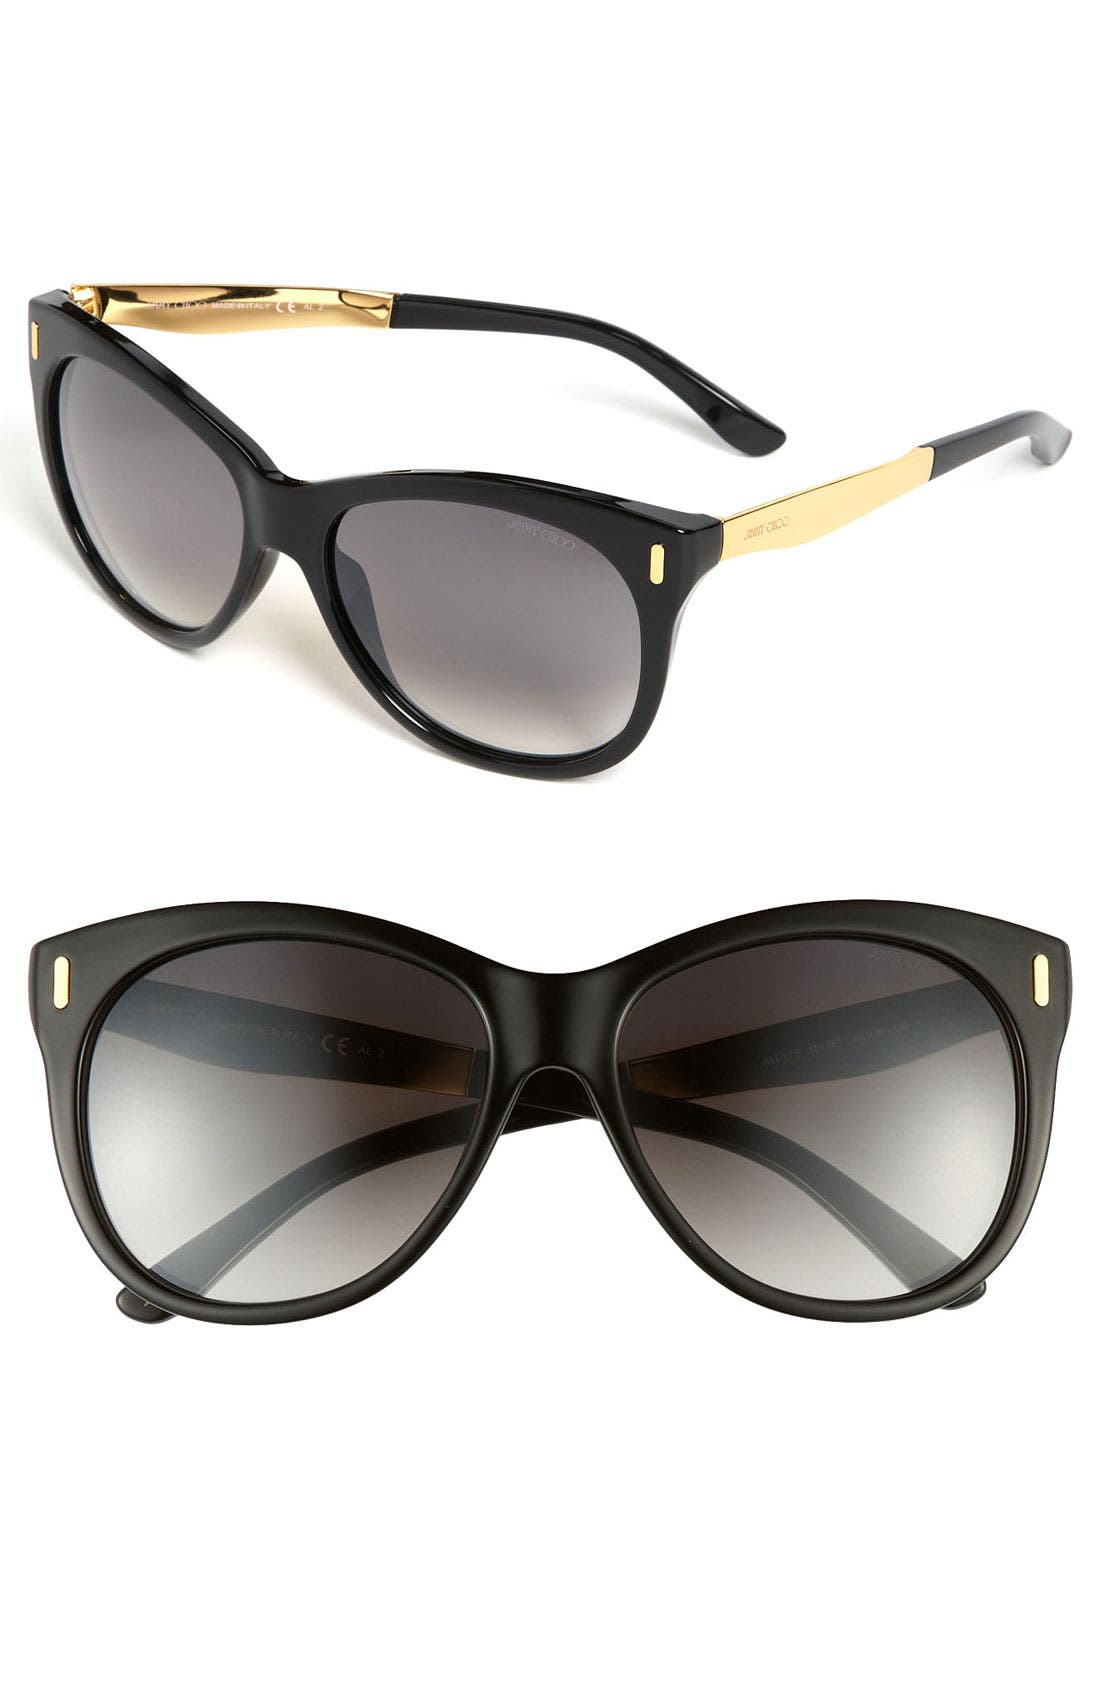 Main Image - Jimmy Choo 'Ally' 56mm Retro Sunglasses